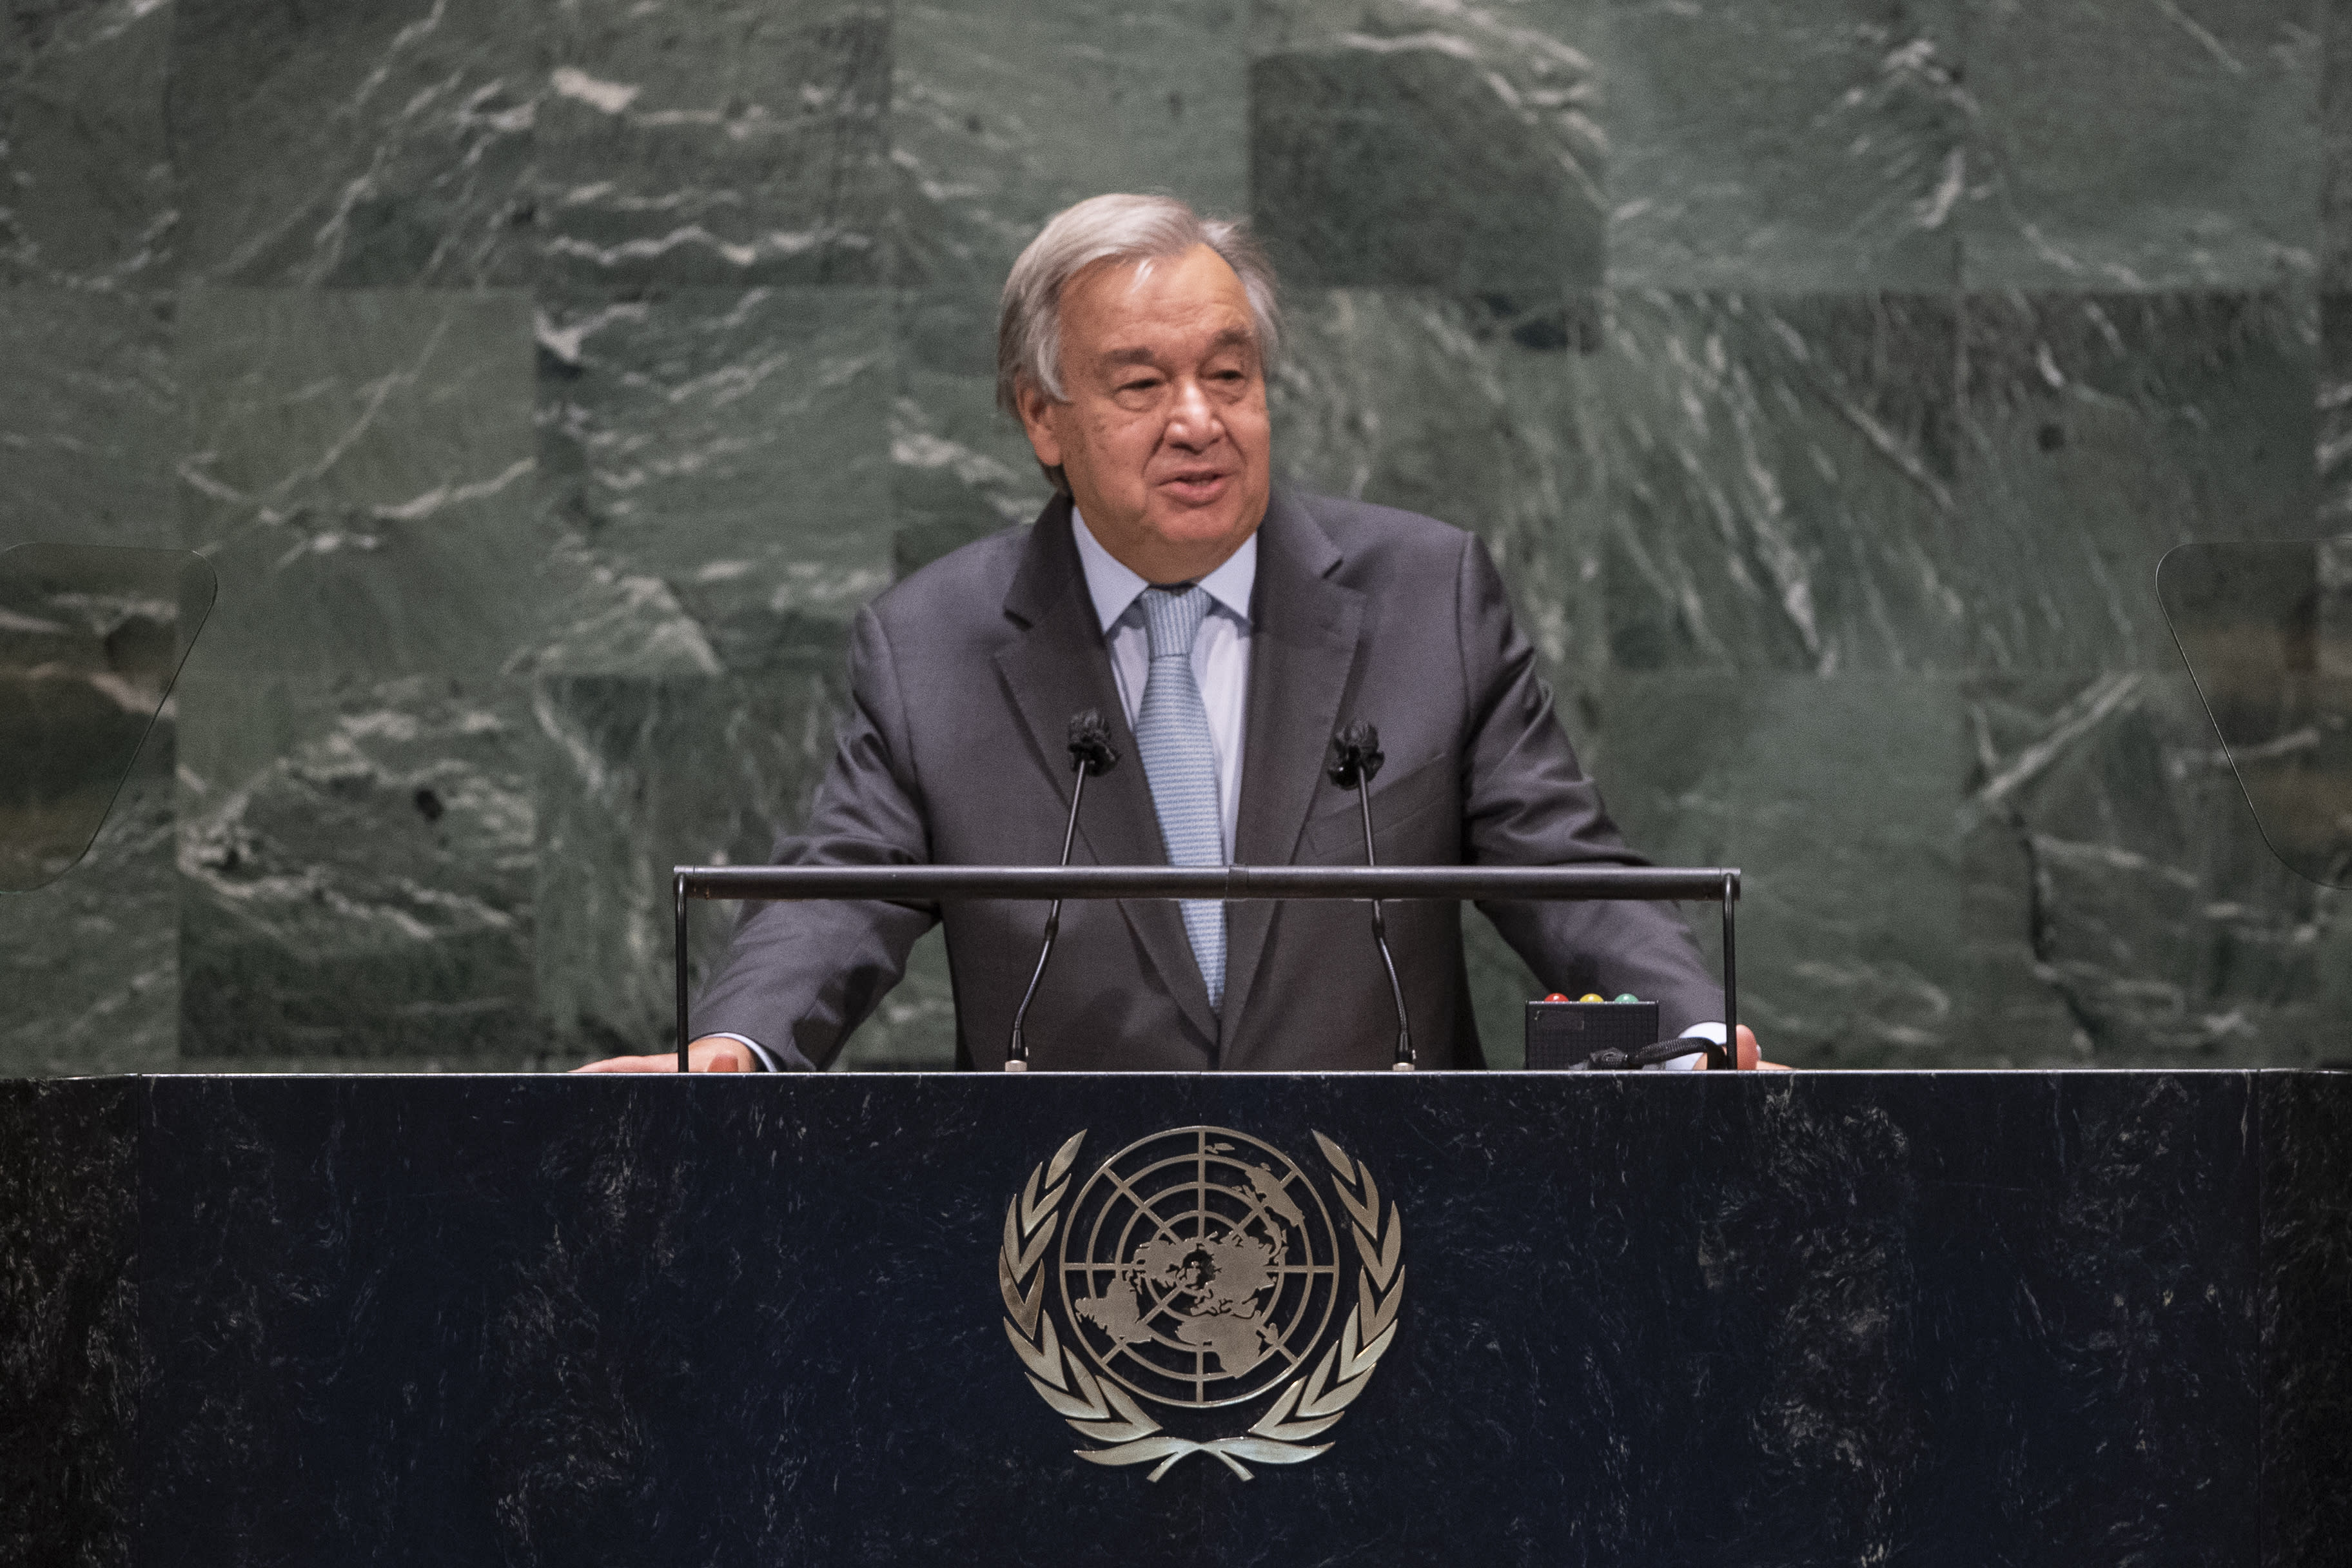 World leaders who skipped past UN meetings get their moment